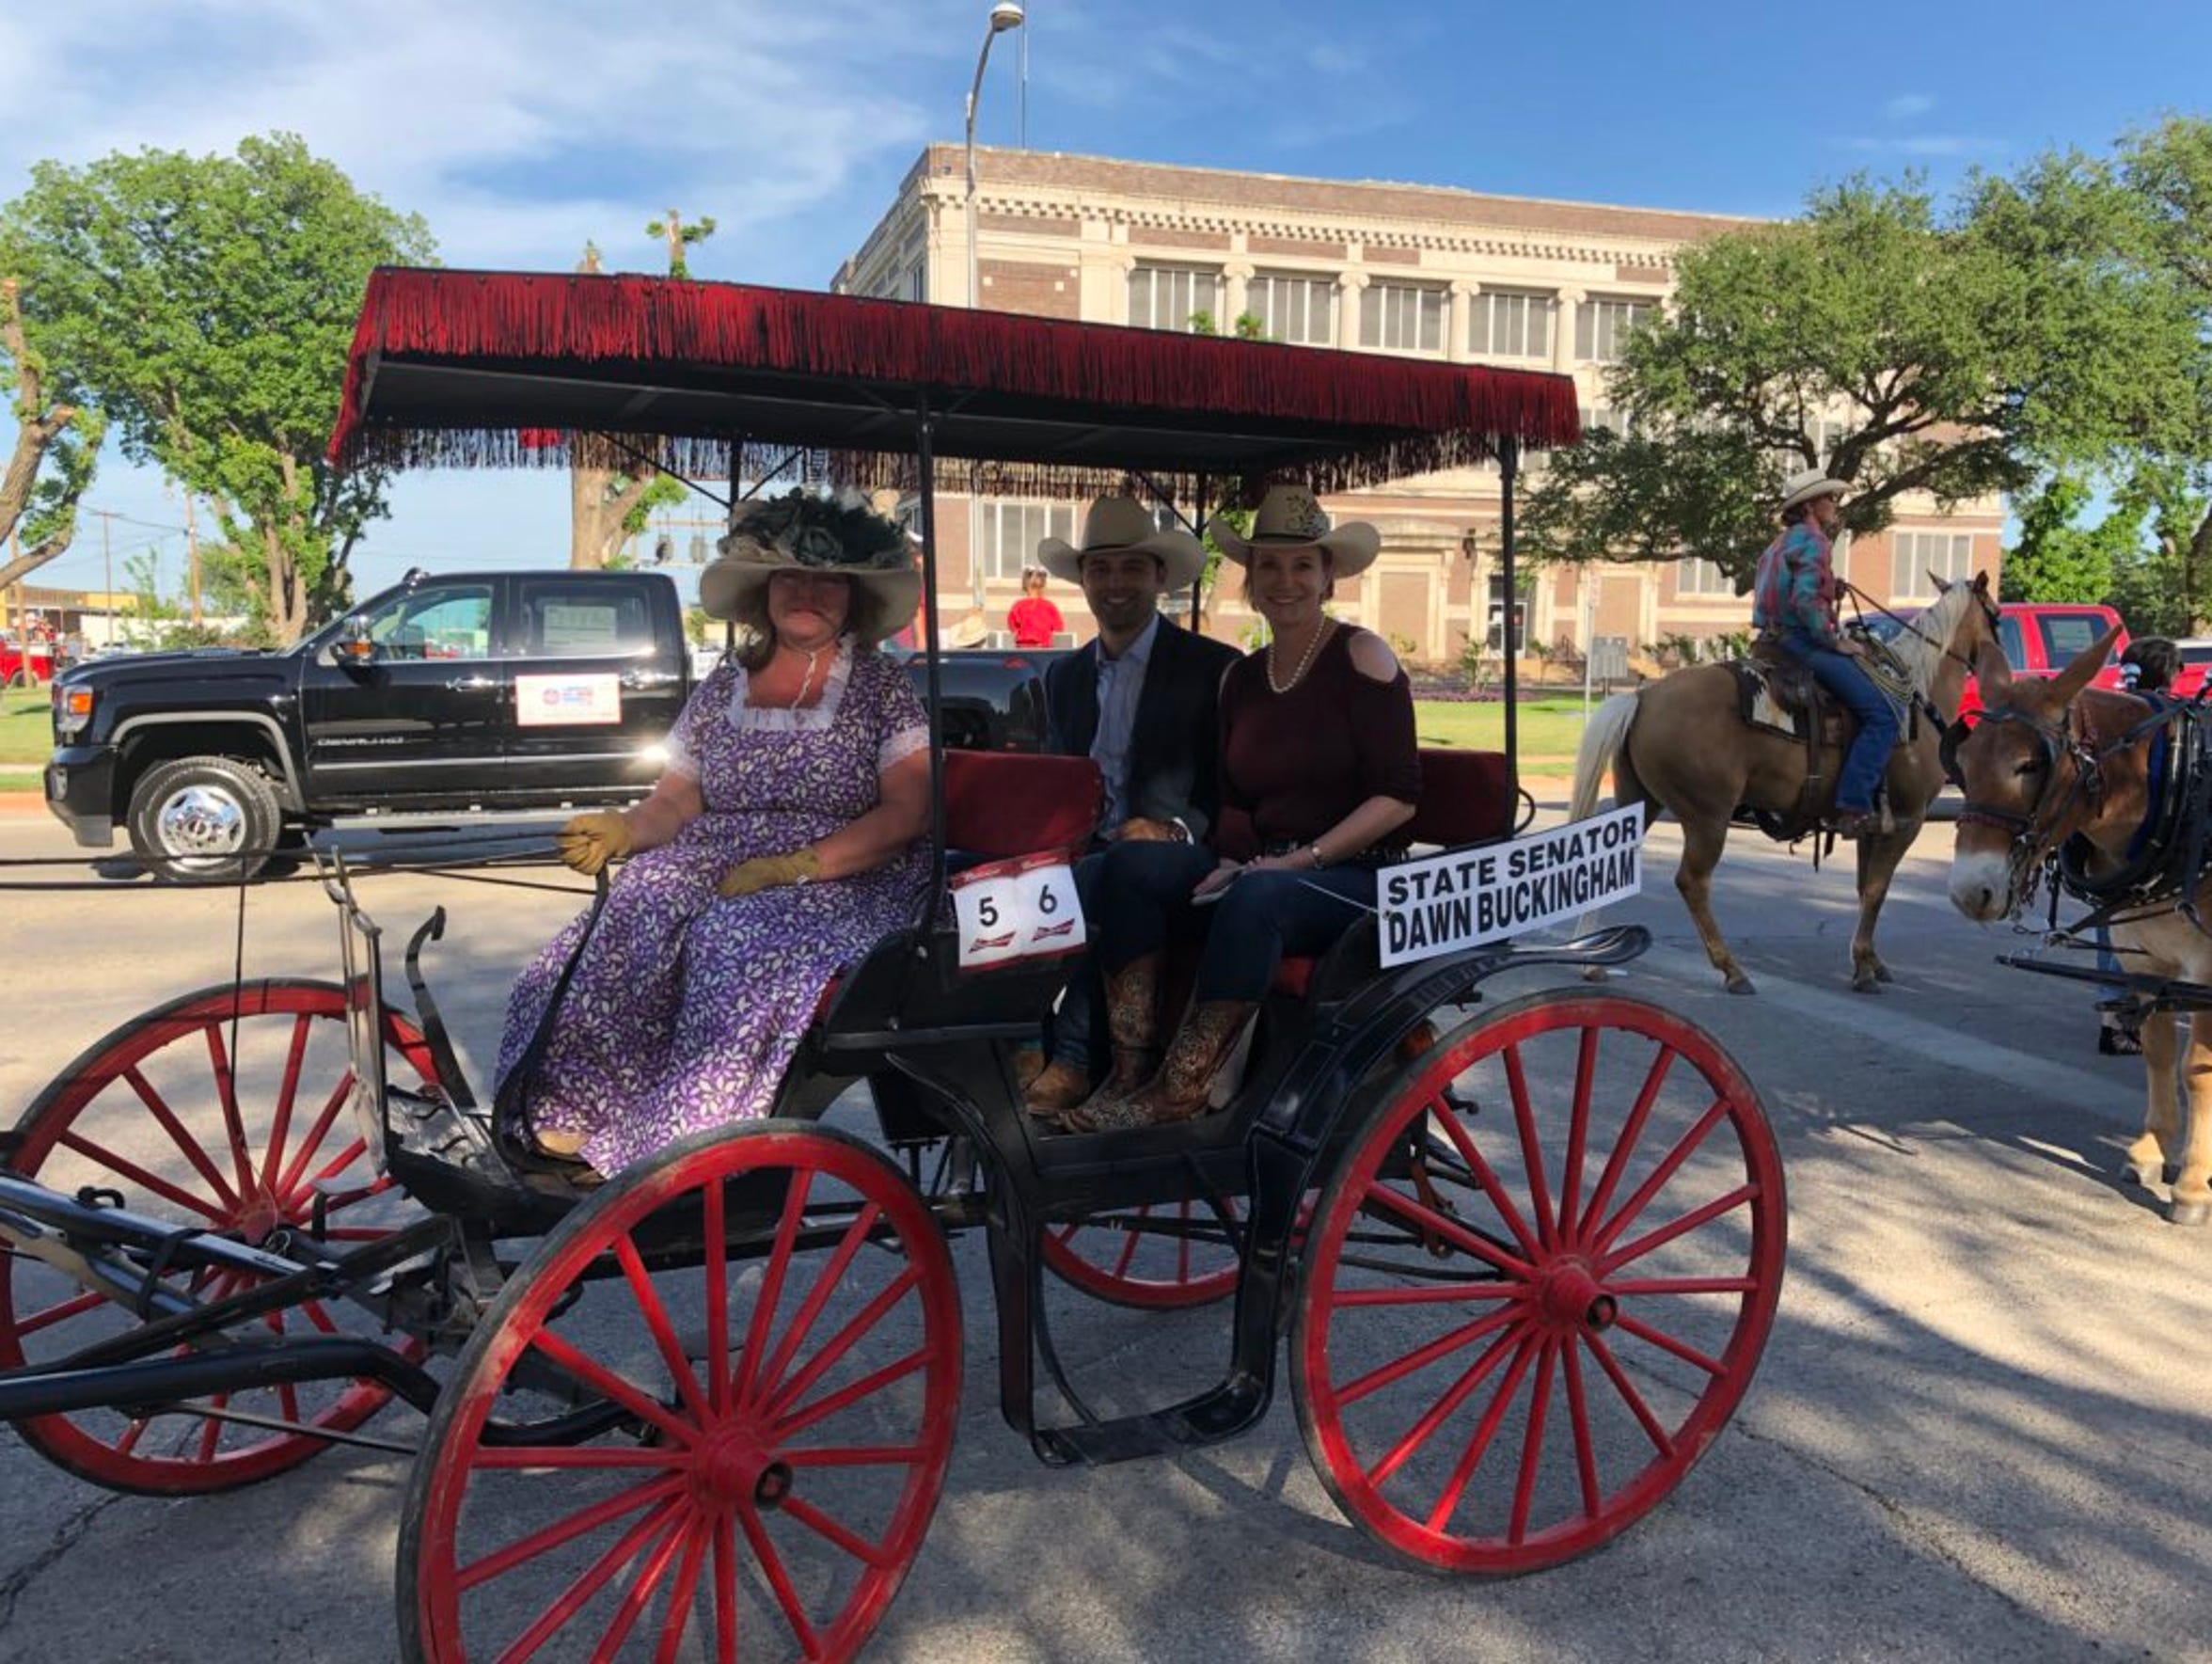 State Sen. Dawn Buckingham, right, Adrian Piloto, center, and driver Evadean Owen wait for the start of the Western Heritage Classic Parade on May 10.  Motorcycle noise later caused their horse to bolt, overturning the buggy and injuring the driver.